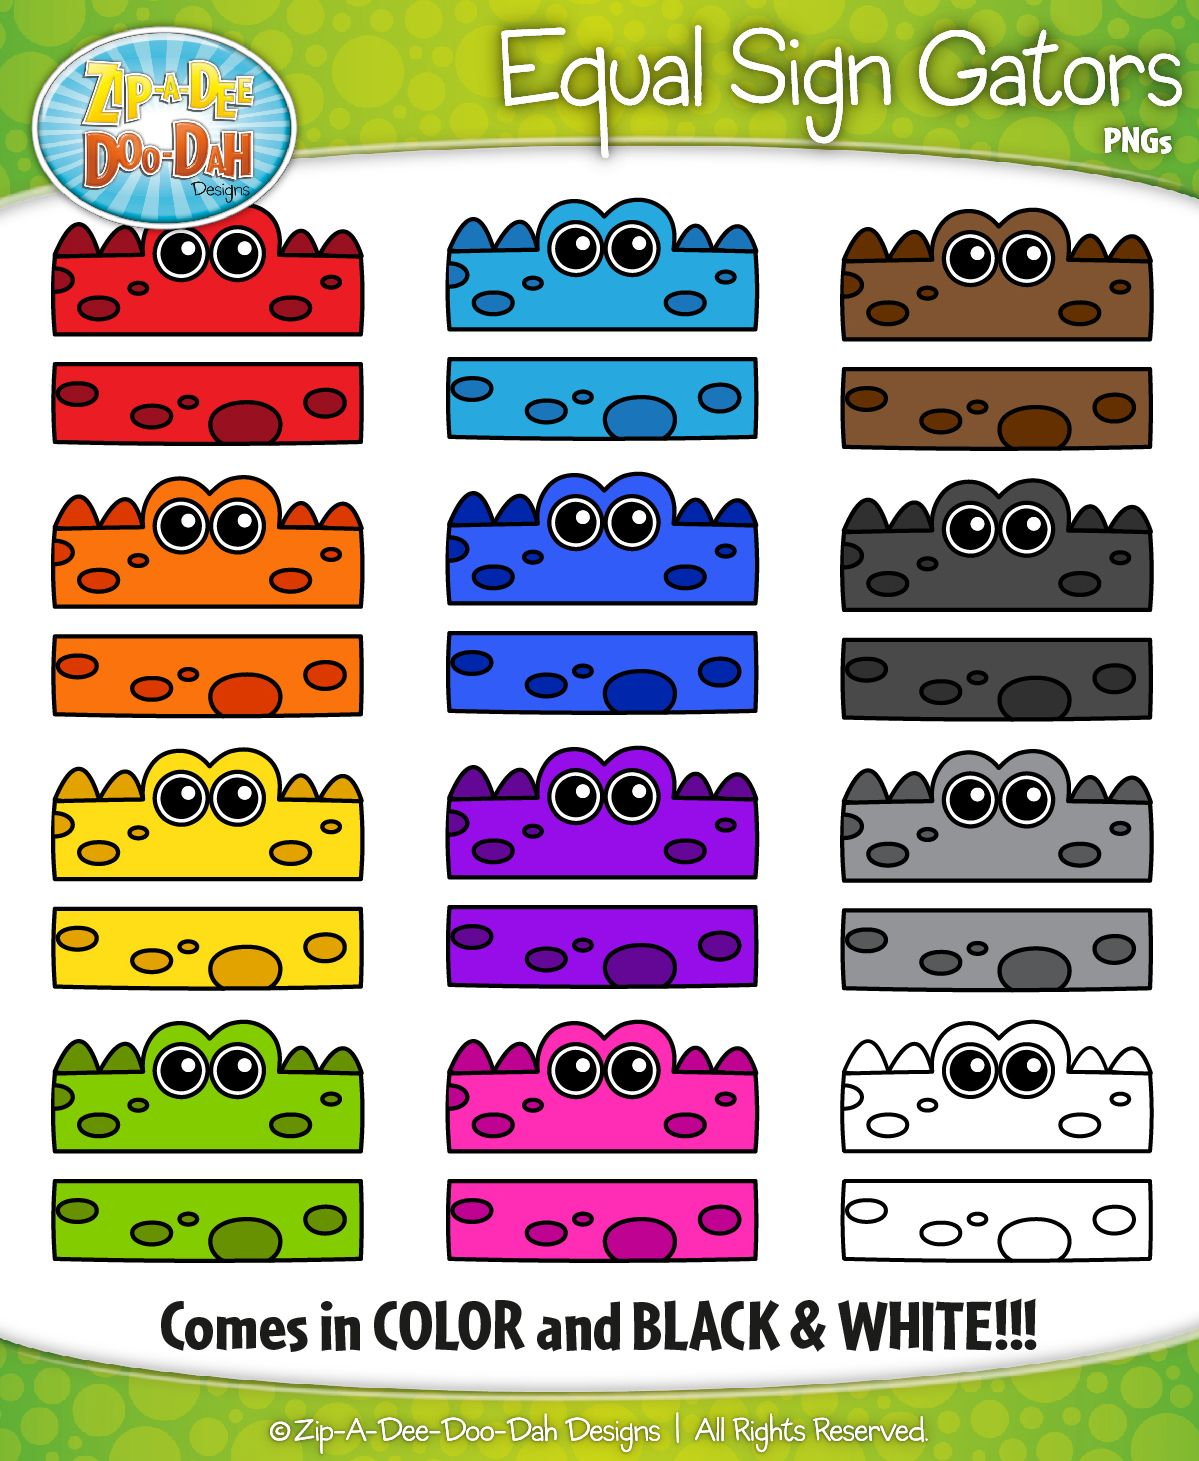 hight resolution of rainbow equal sign gator characters clipart includes 12 graphics